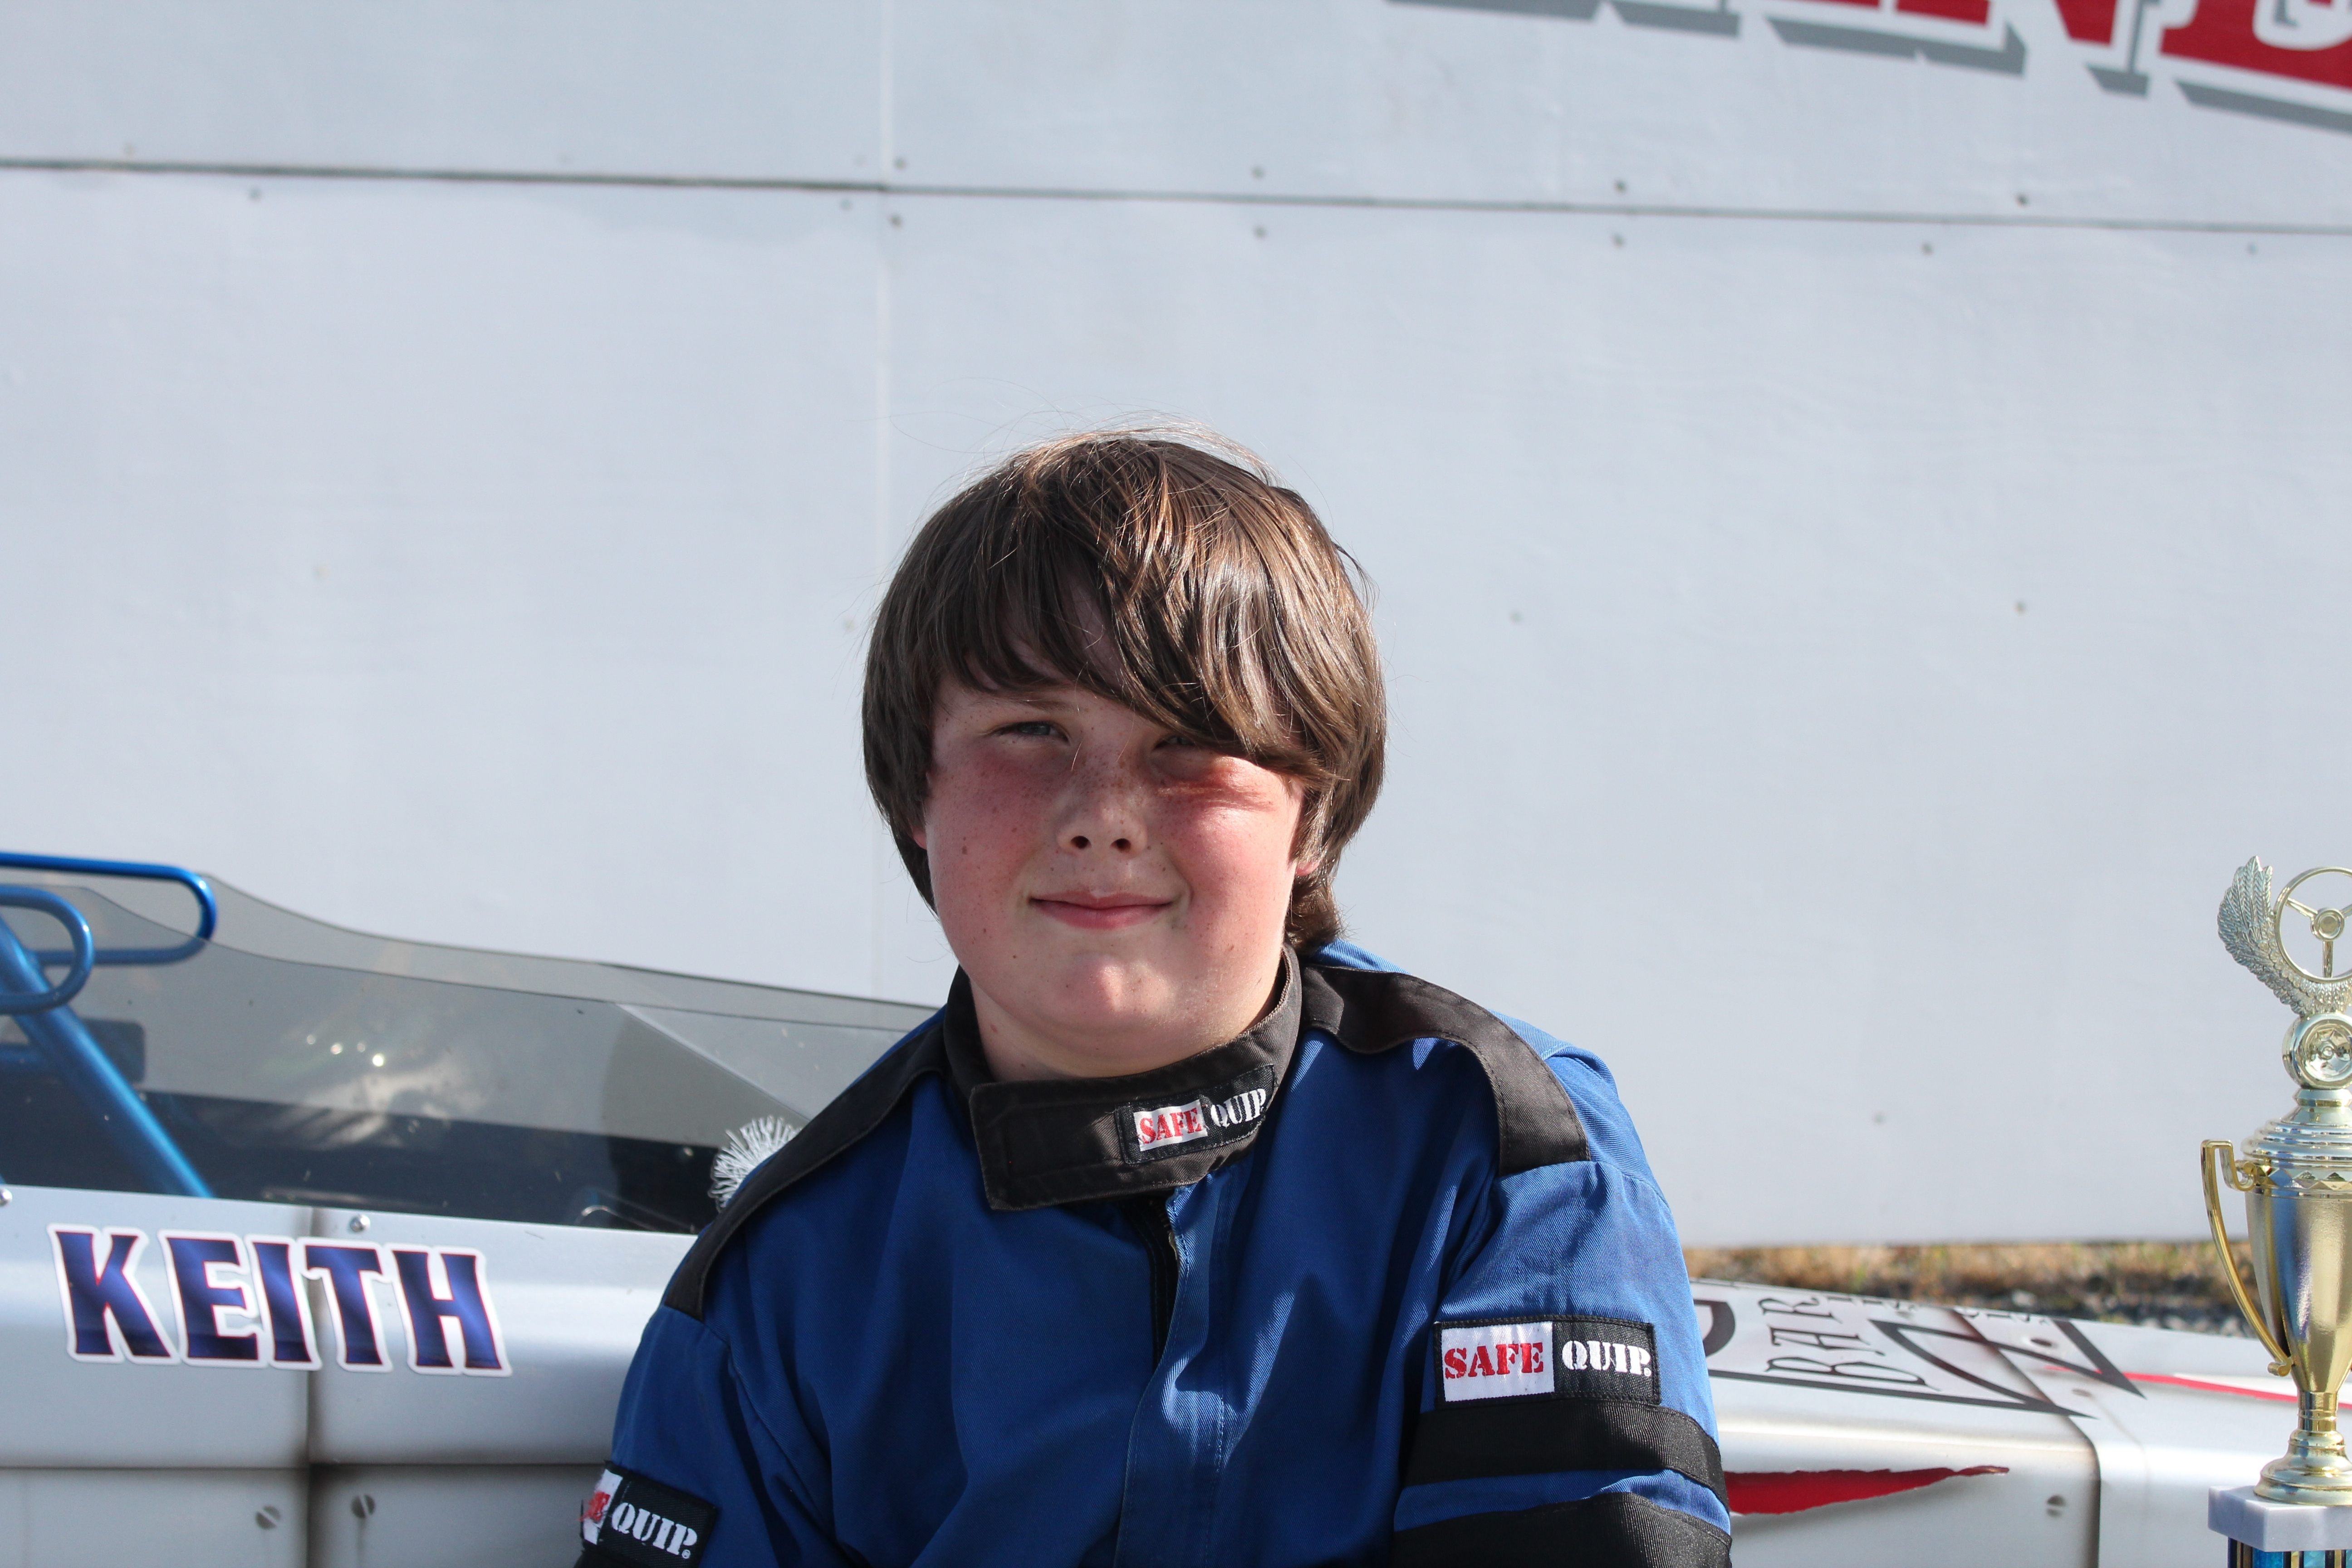 JR 1 DRAGSTER WINNER KEITH RIDDLE